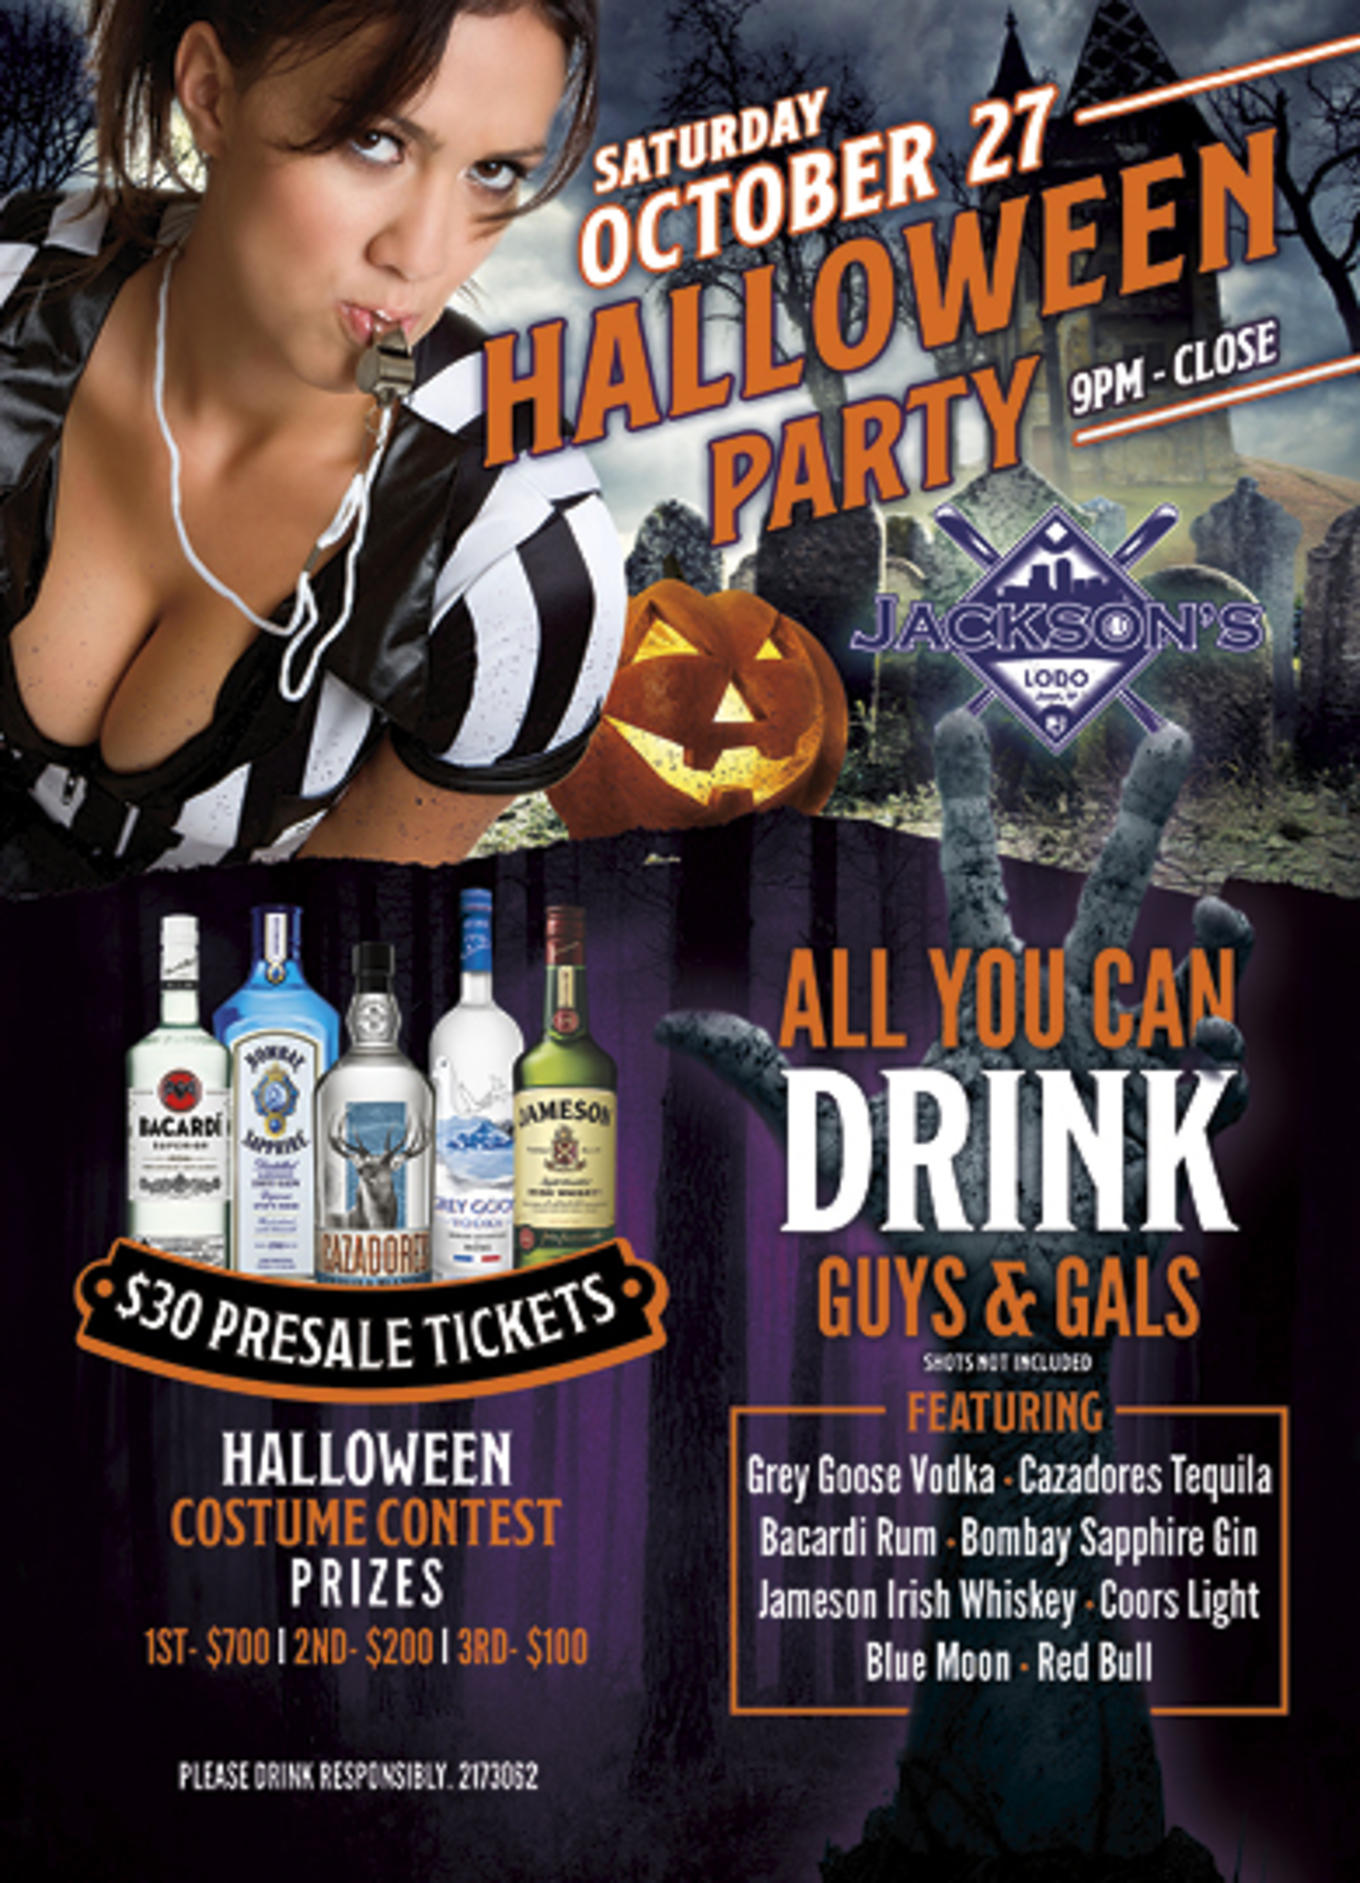 jackson's halloween party! - tickets - jackson's downtown, denver